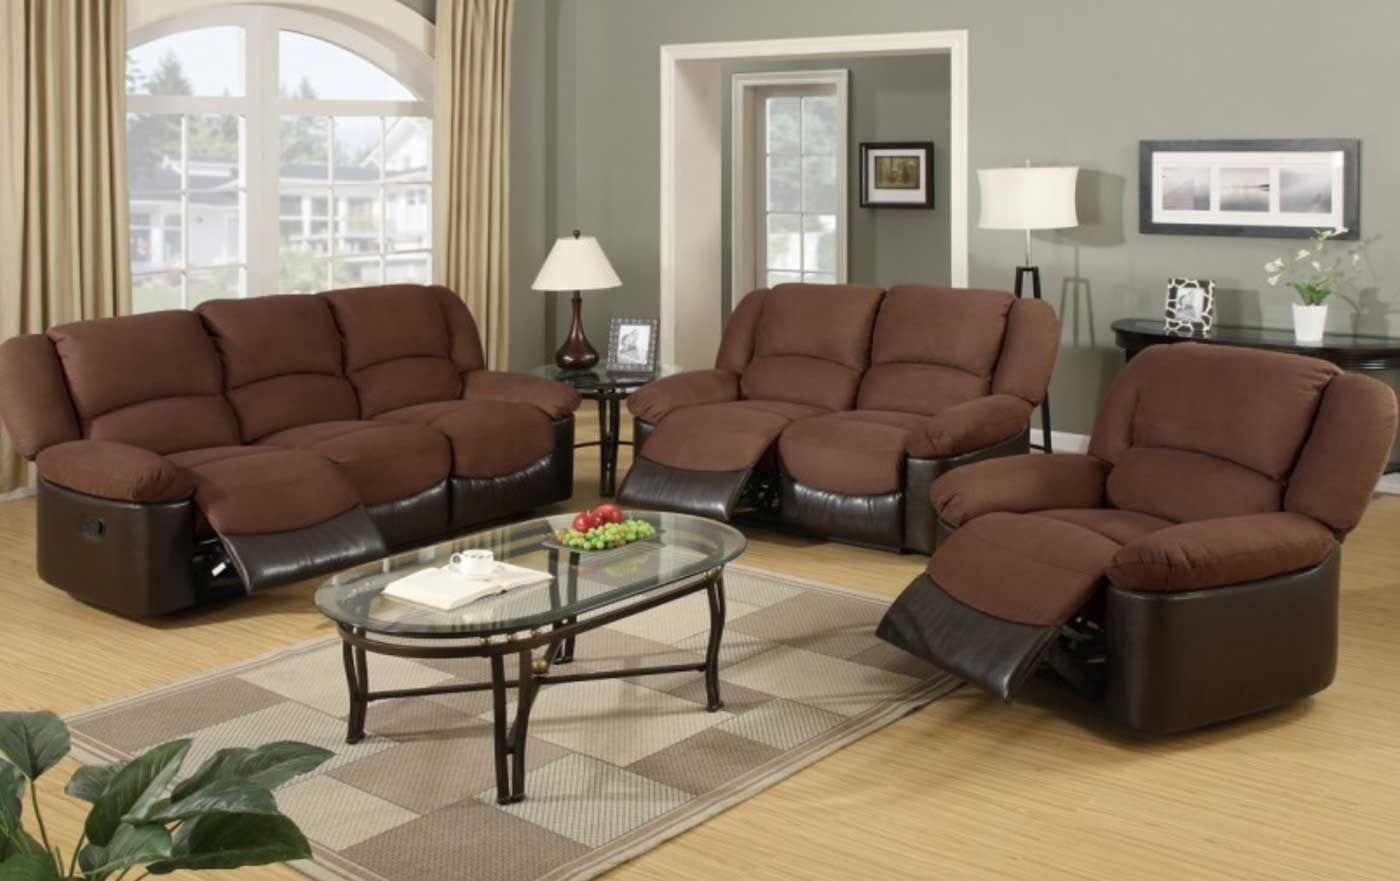 Luxury Placement Of Living Room Set Up Concept Interior Design - Living room sets with recliners